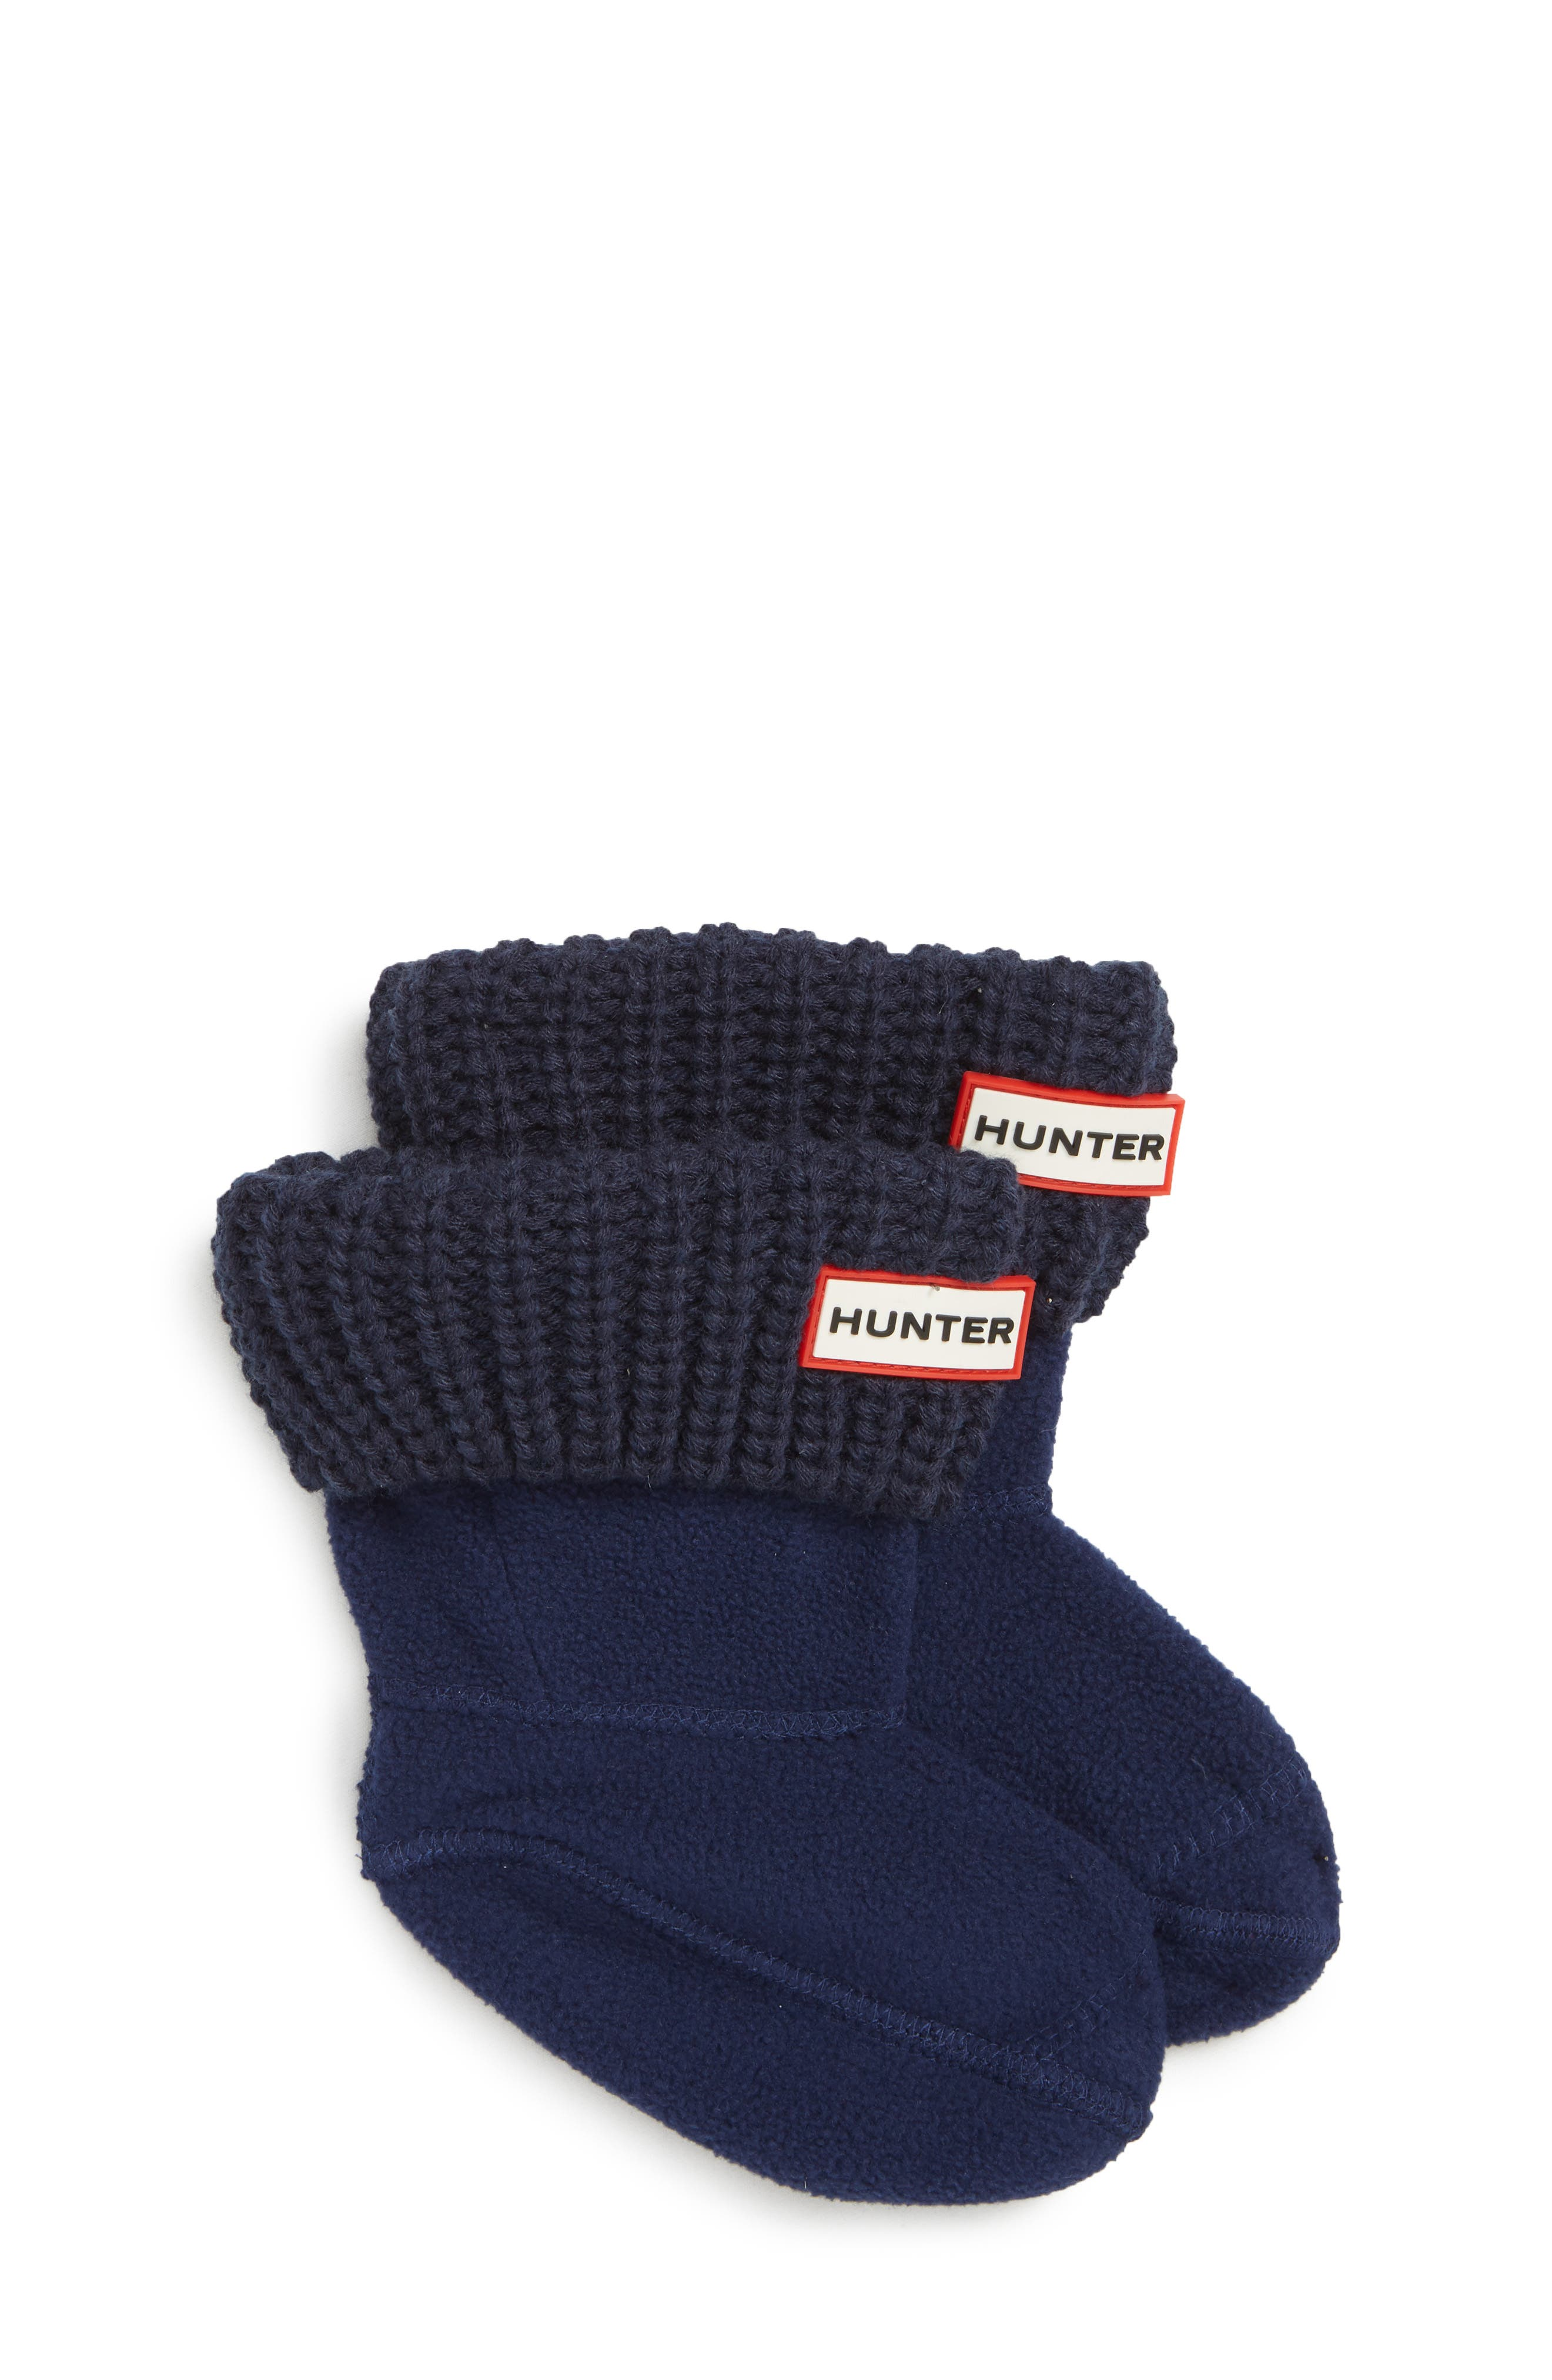 HUNTER Cardigan Knit Cuff Welly Boot Socks, Main, color, NAVY